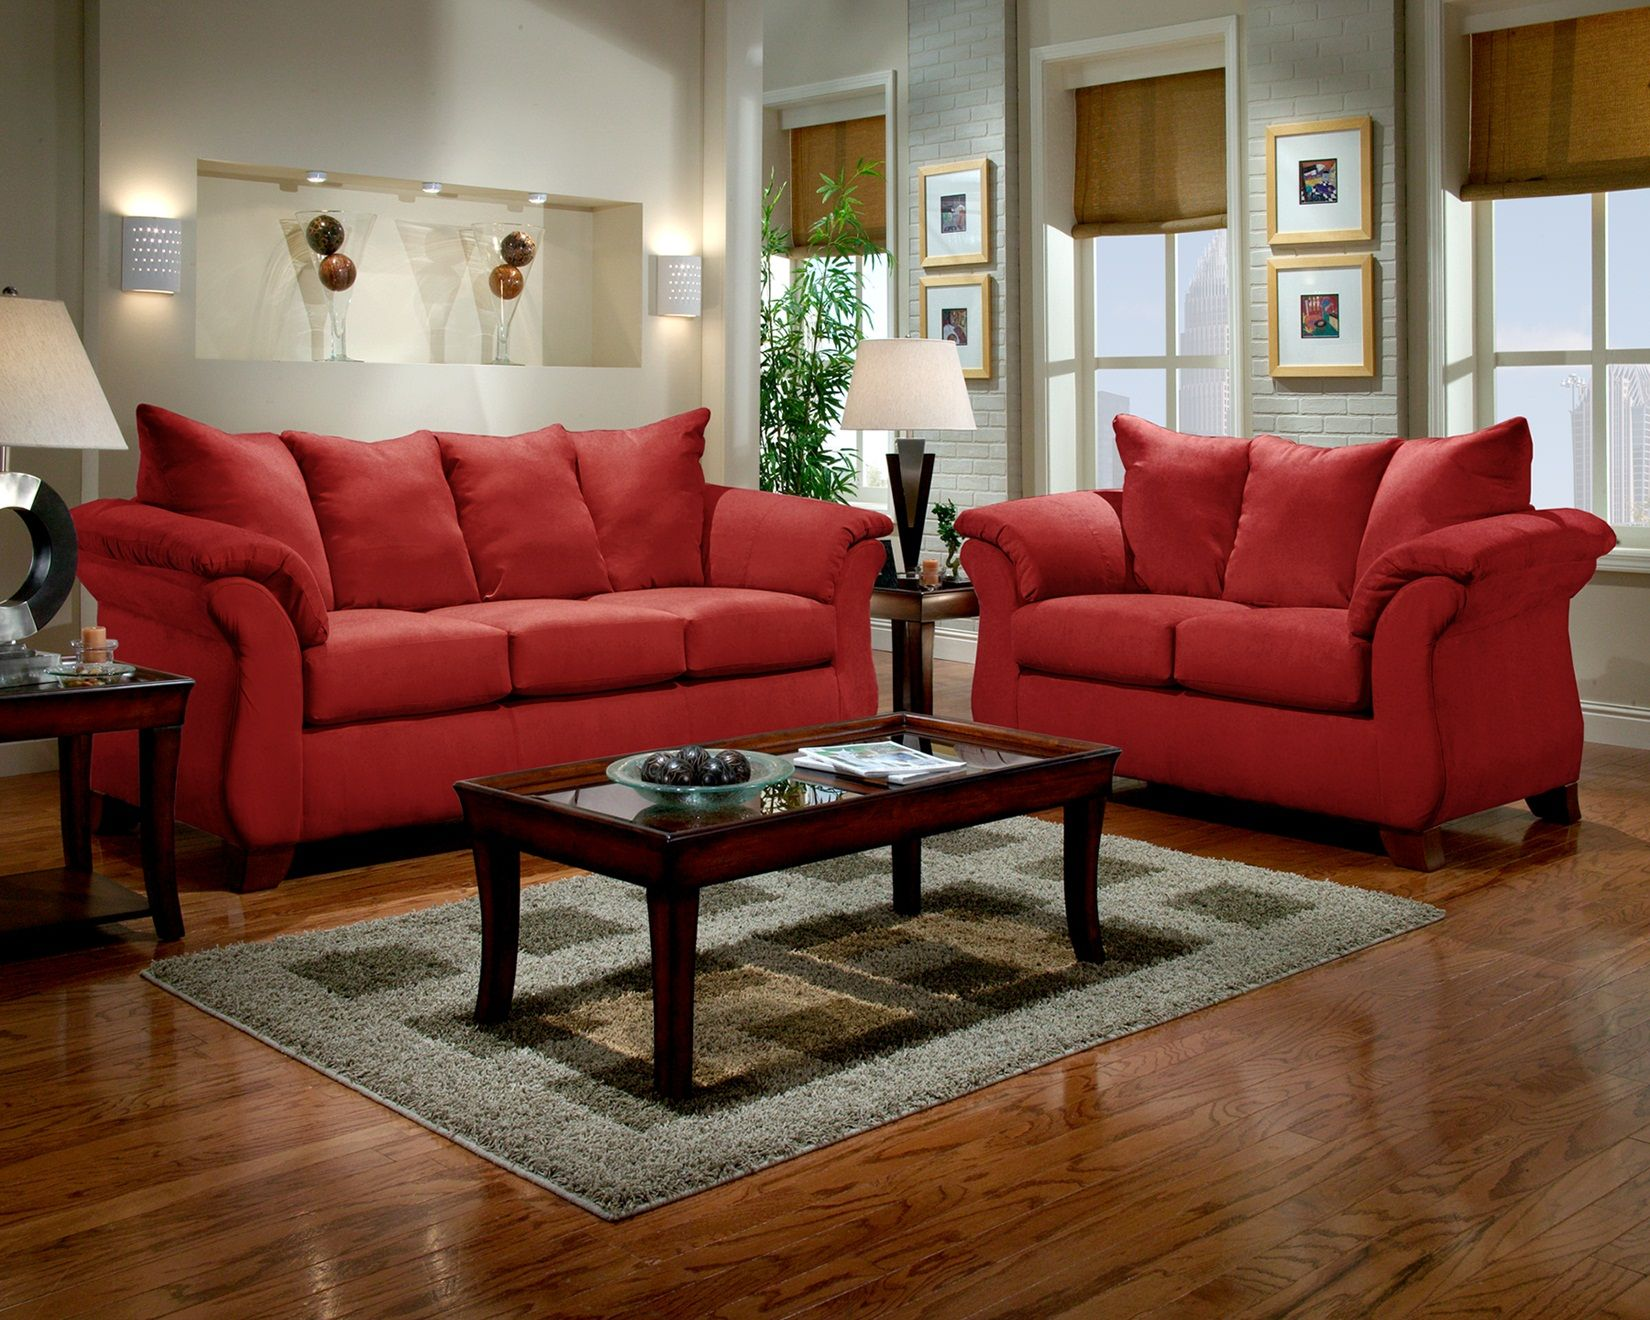 10+ images about living room on pinterest | red living rooms